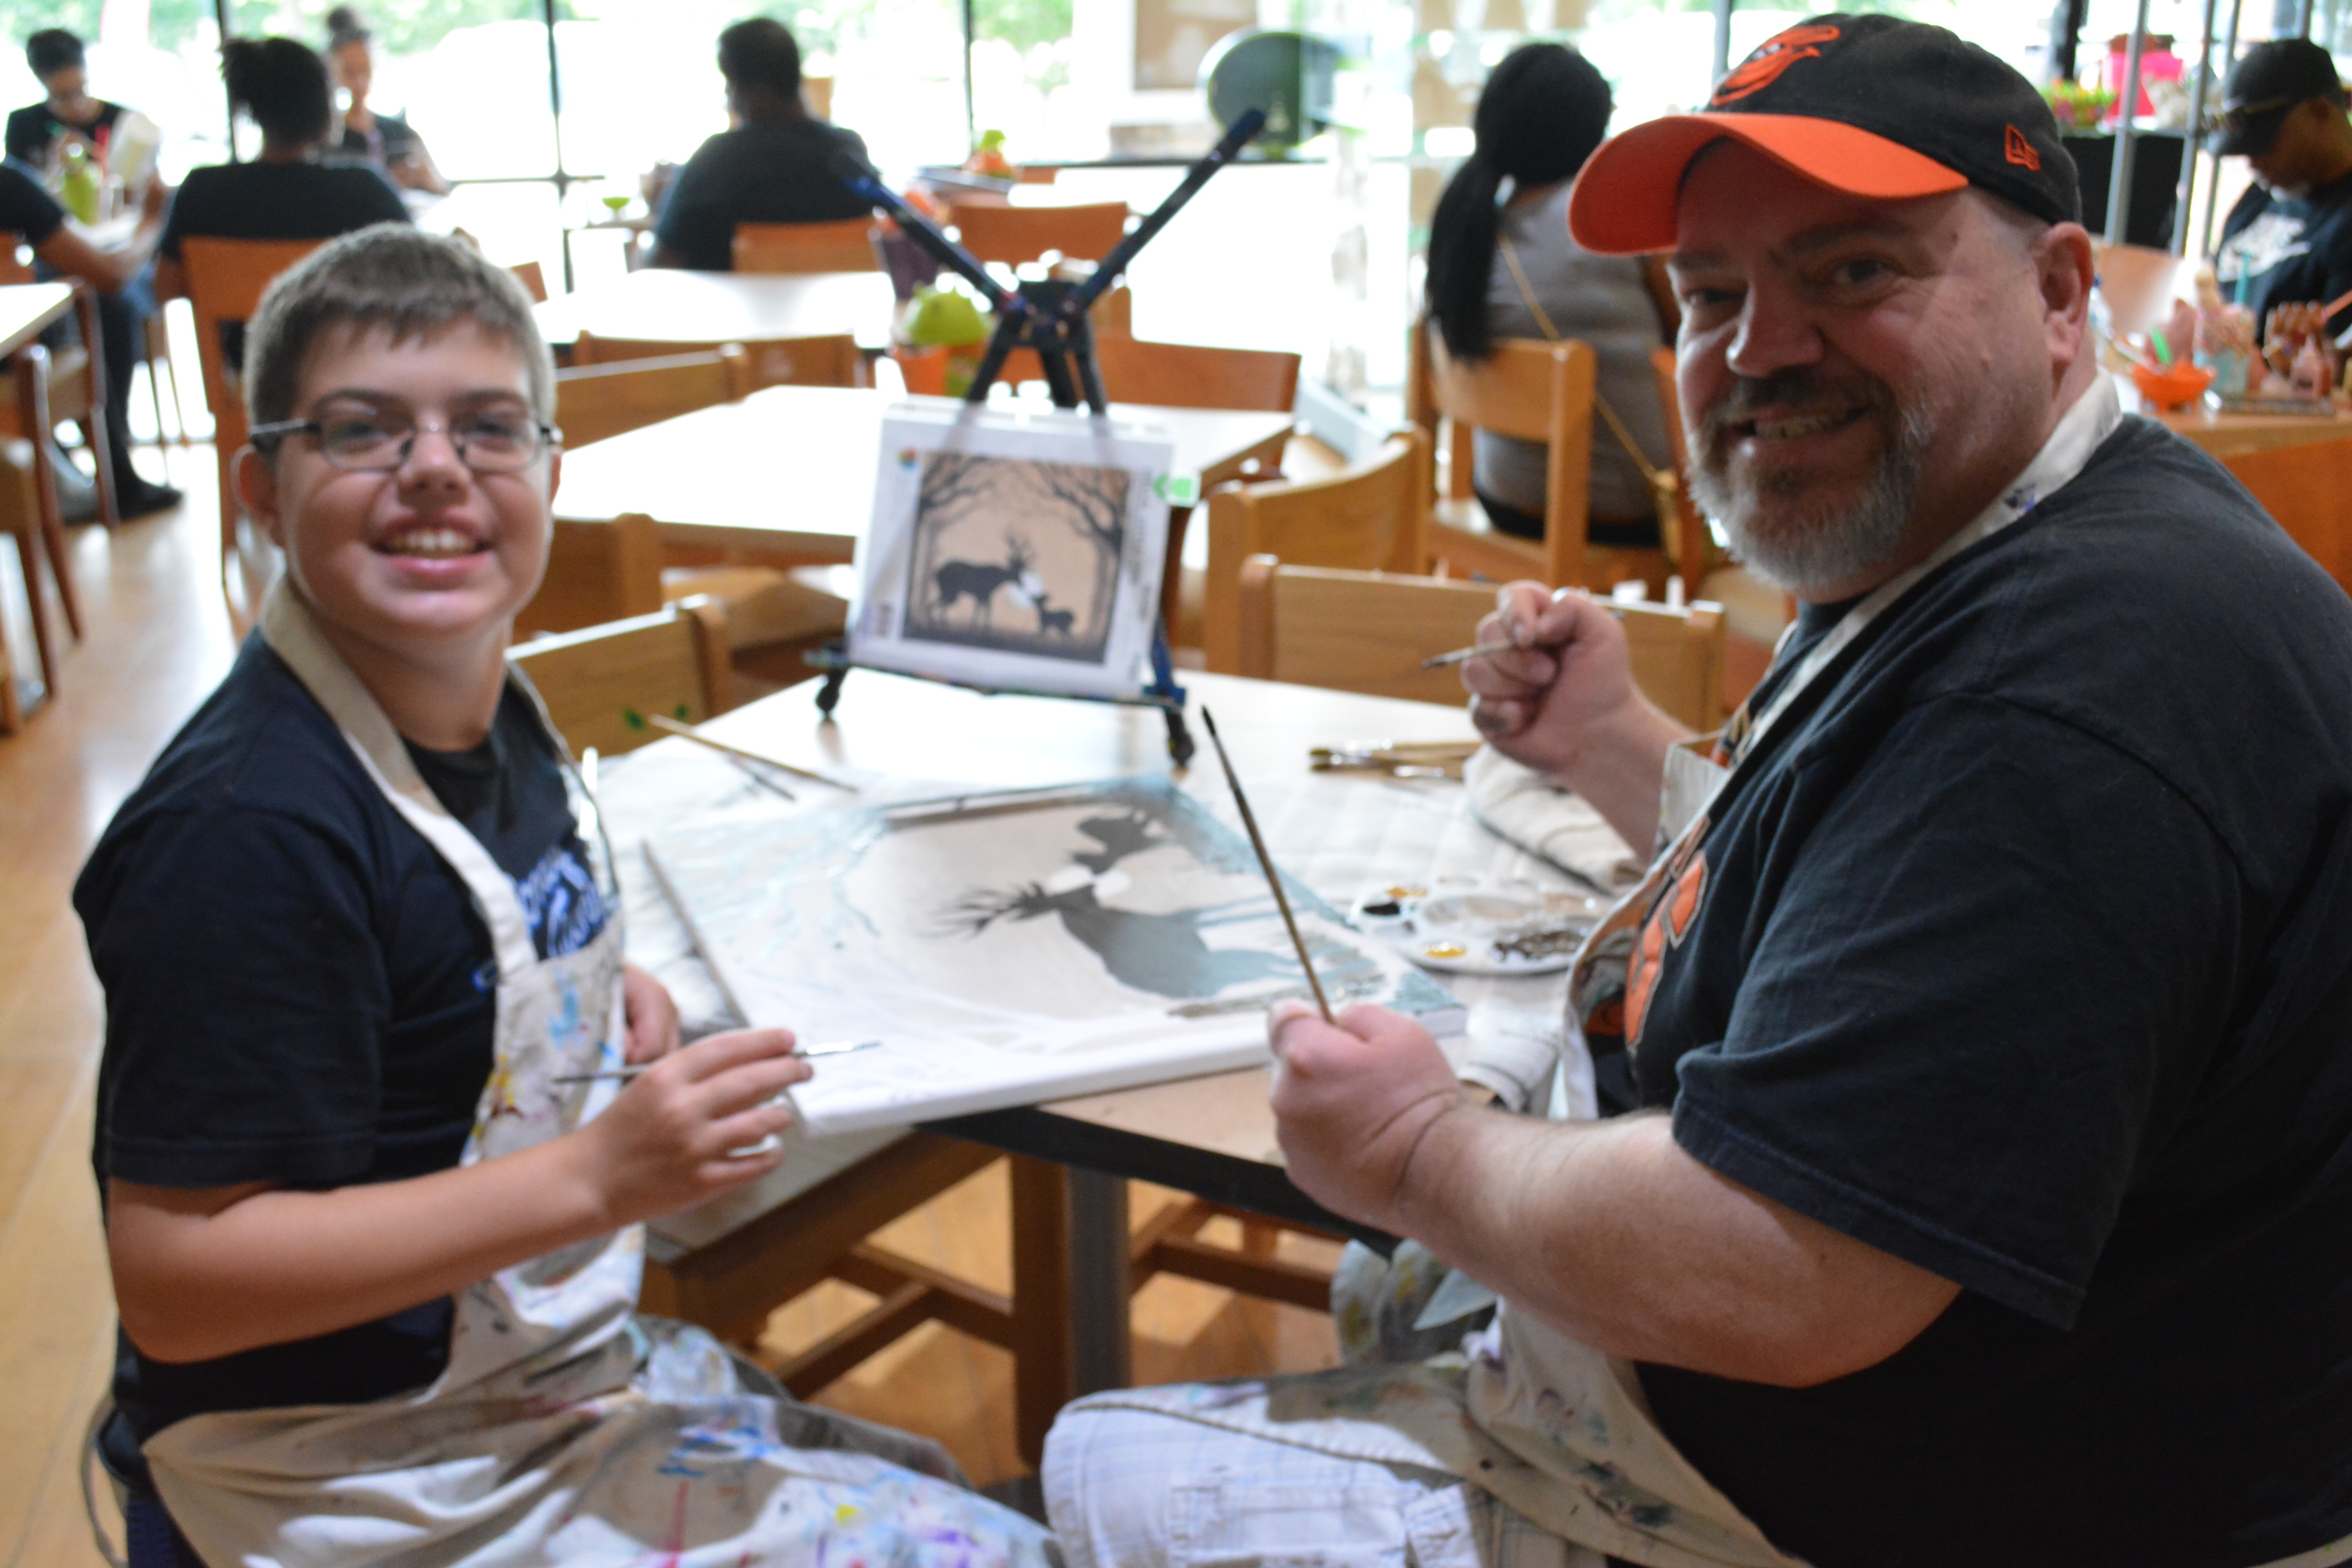 Father Son Family Time at The Creativity Cafe